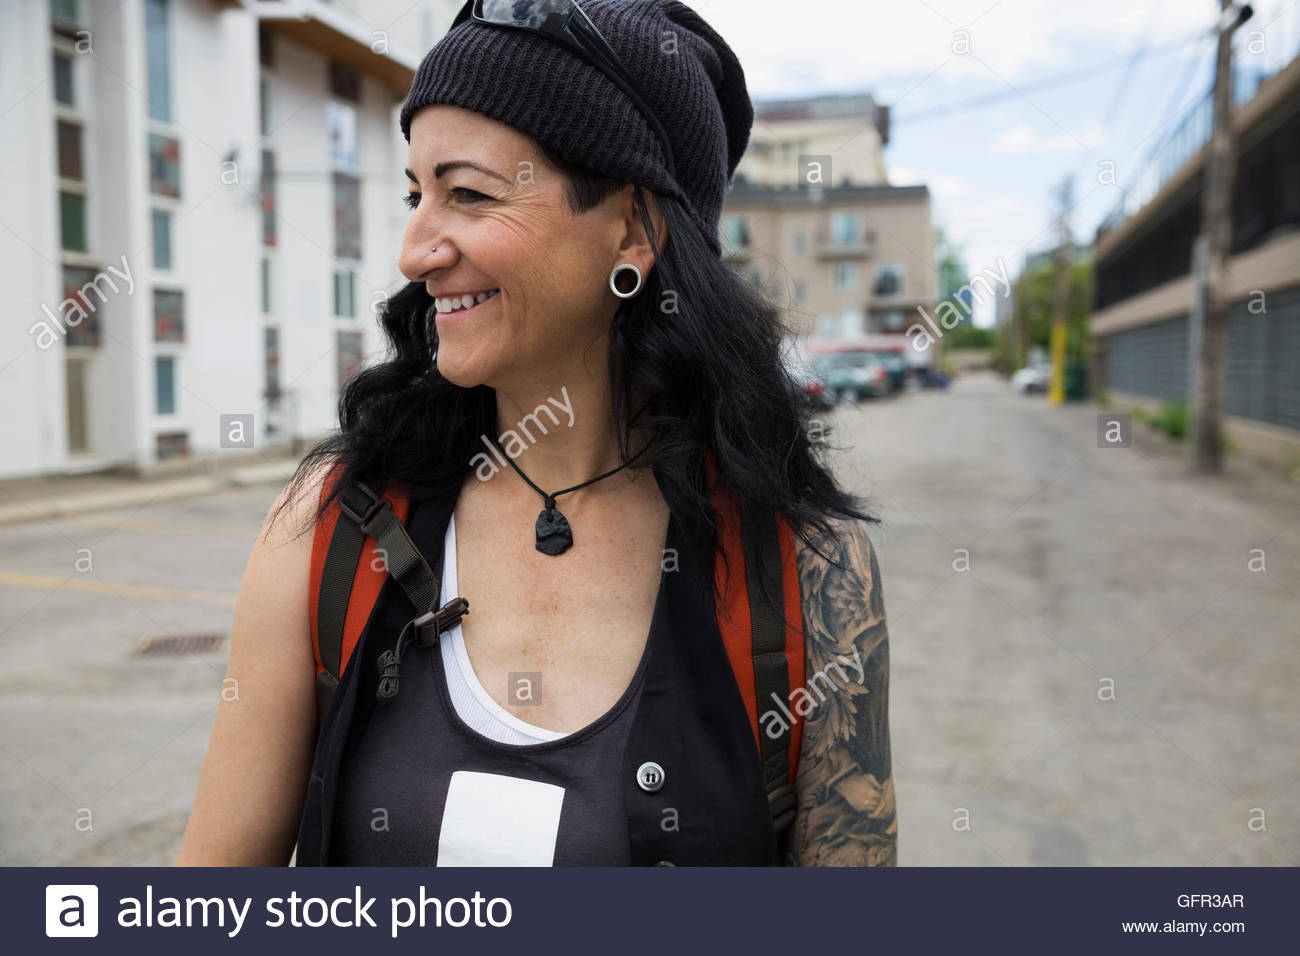 Cool woman smiling in urban alley Photo Stock